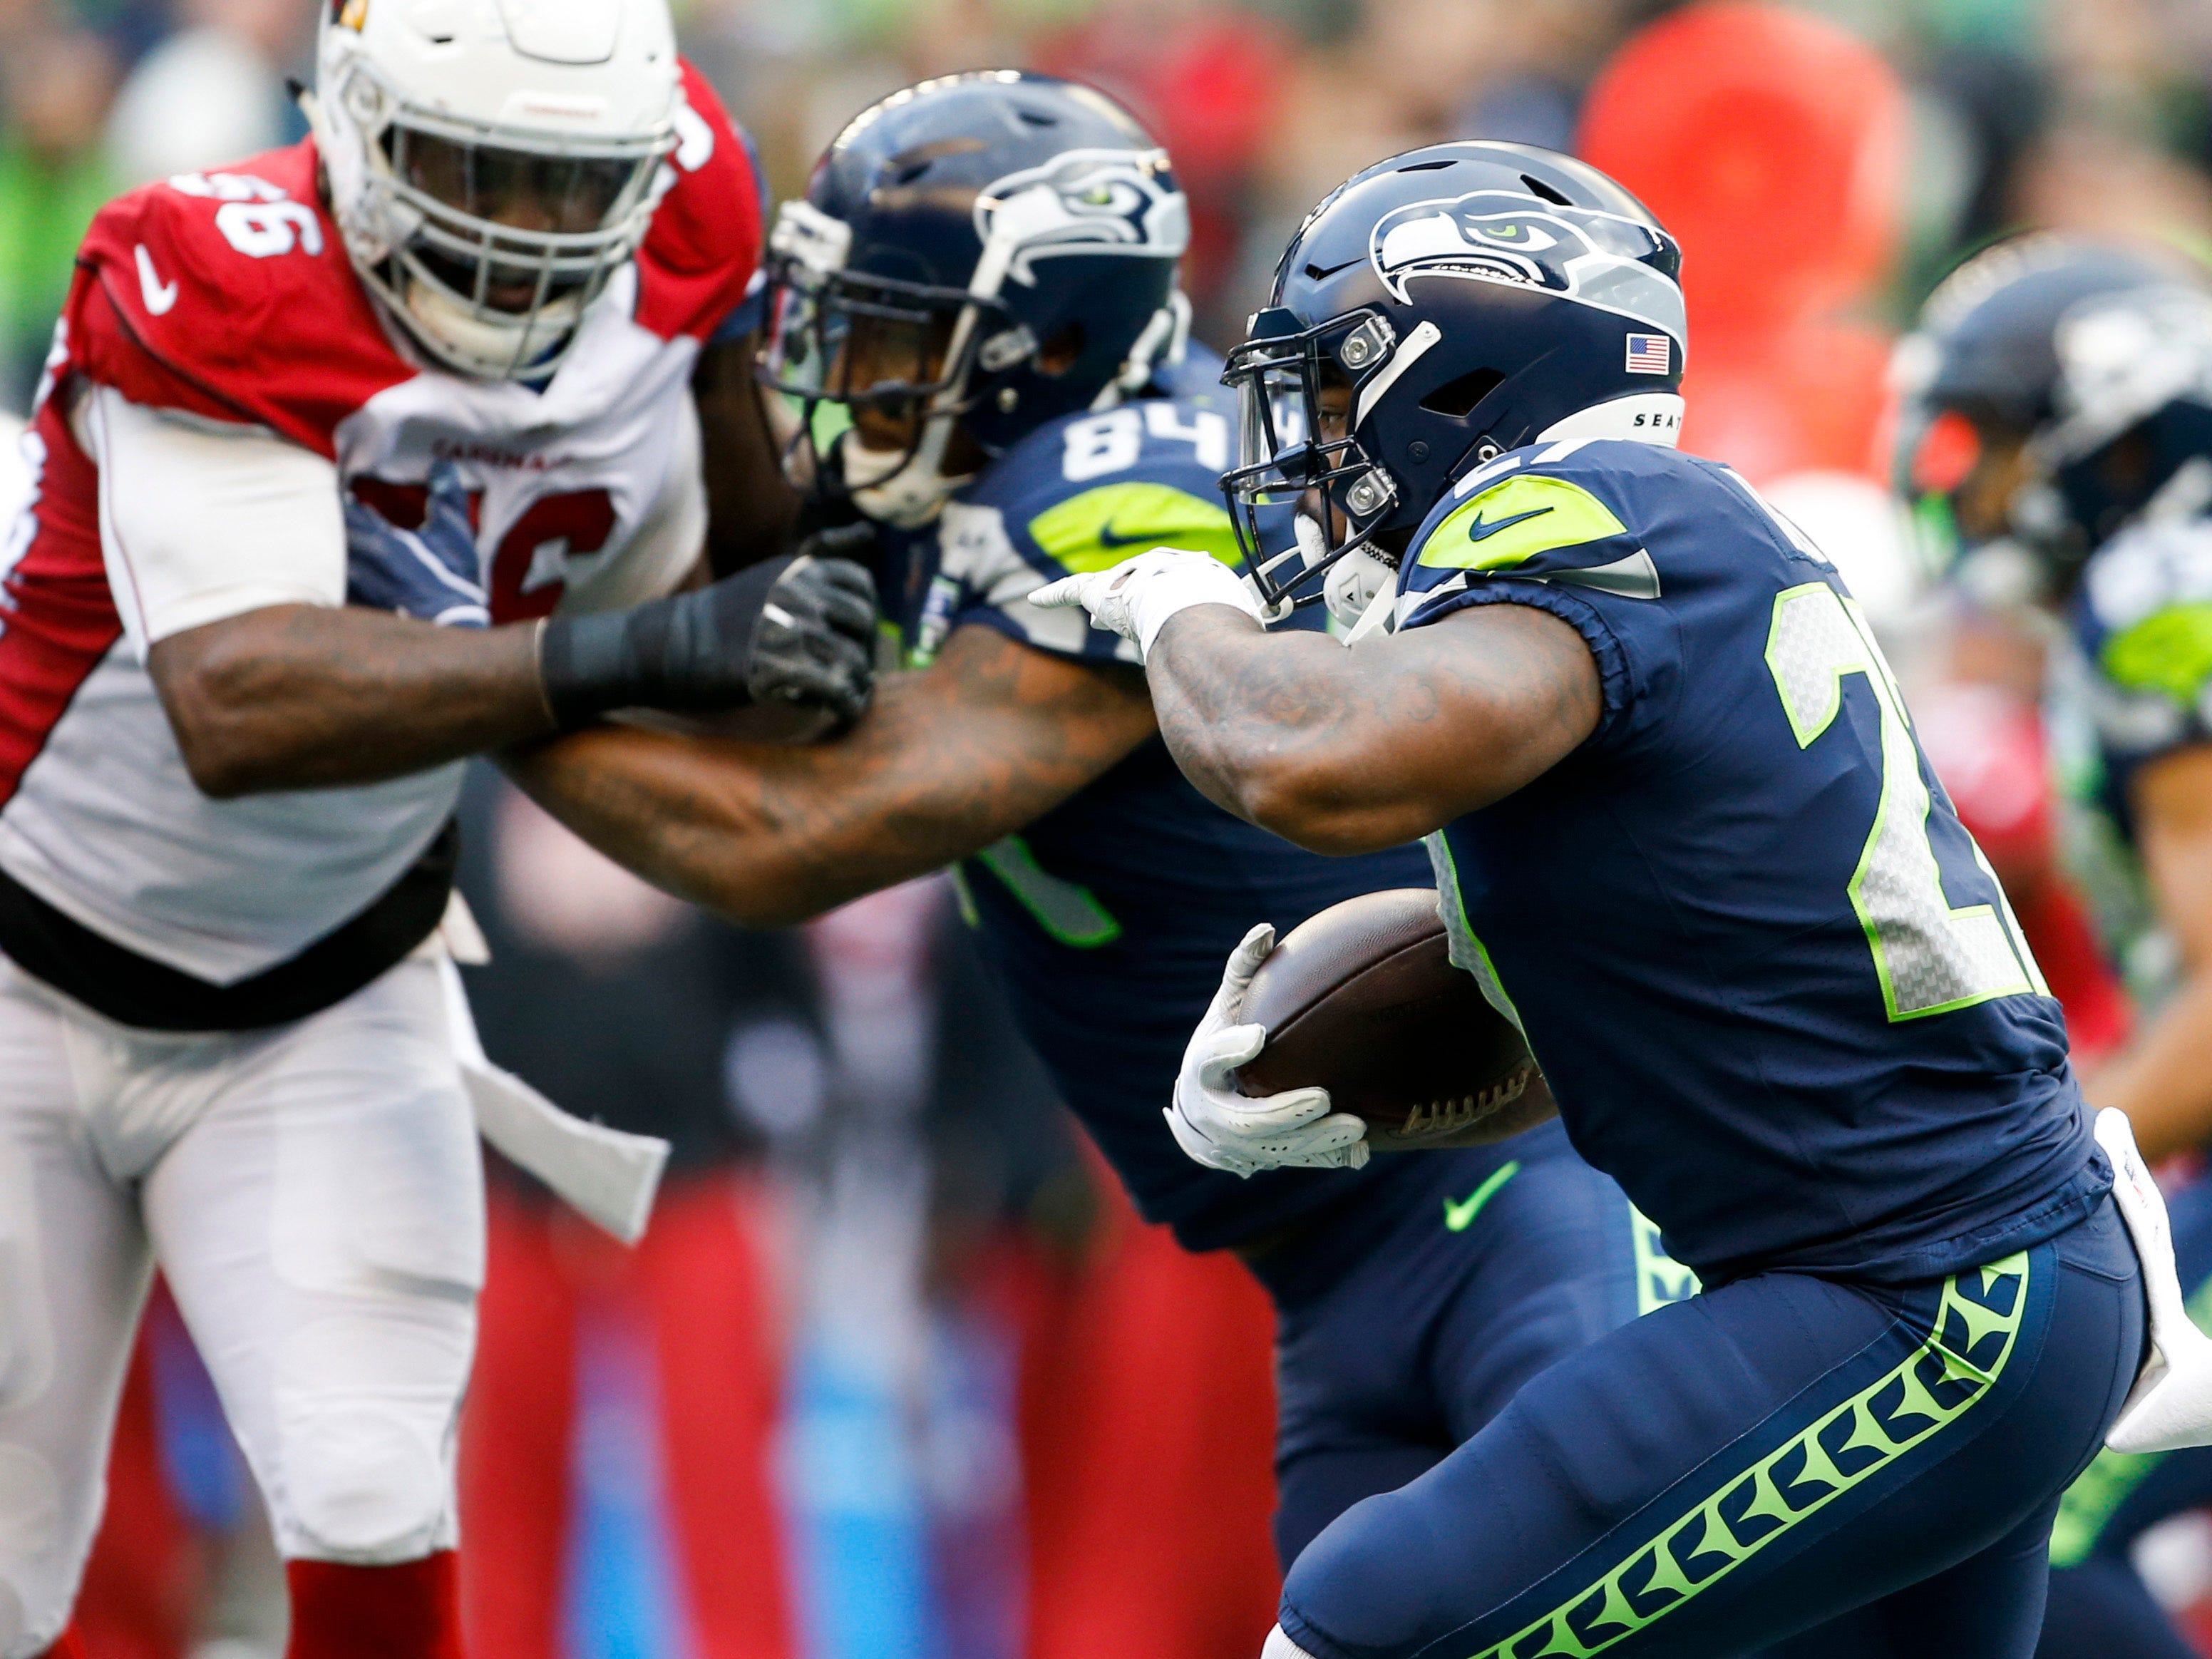 Dec 30, 2018; Seattle, WA, USA; Seattle Seahawks running back Mike Davis (27) rushes against the Arizona Cardinals during the first quarter at CenturyLink Field. Mandatory Credit: Joe Nicholson-USA TODAY Sports